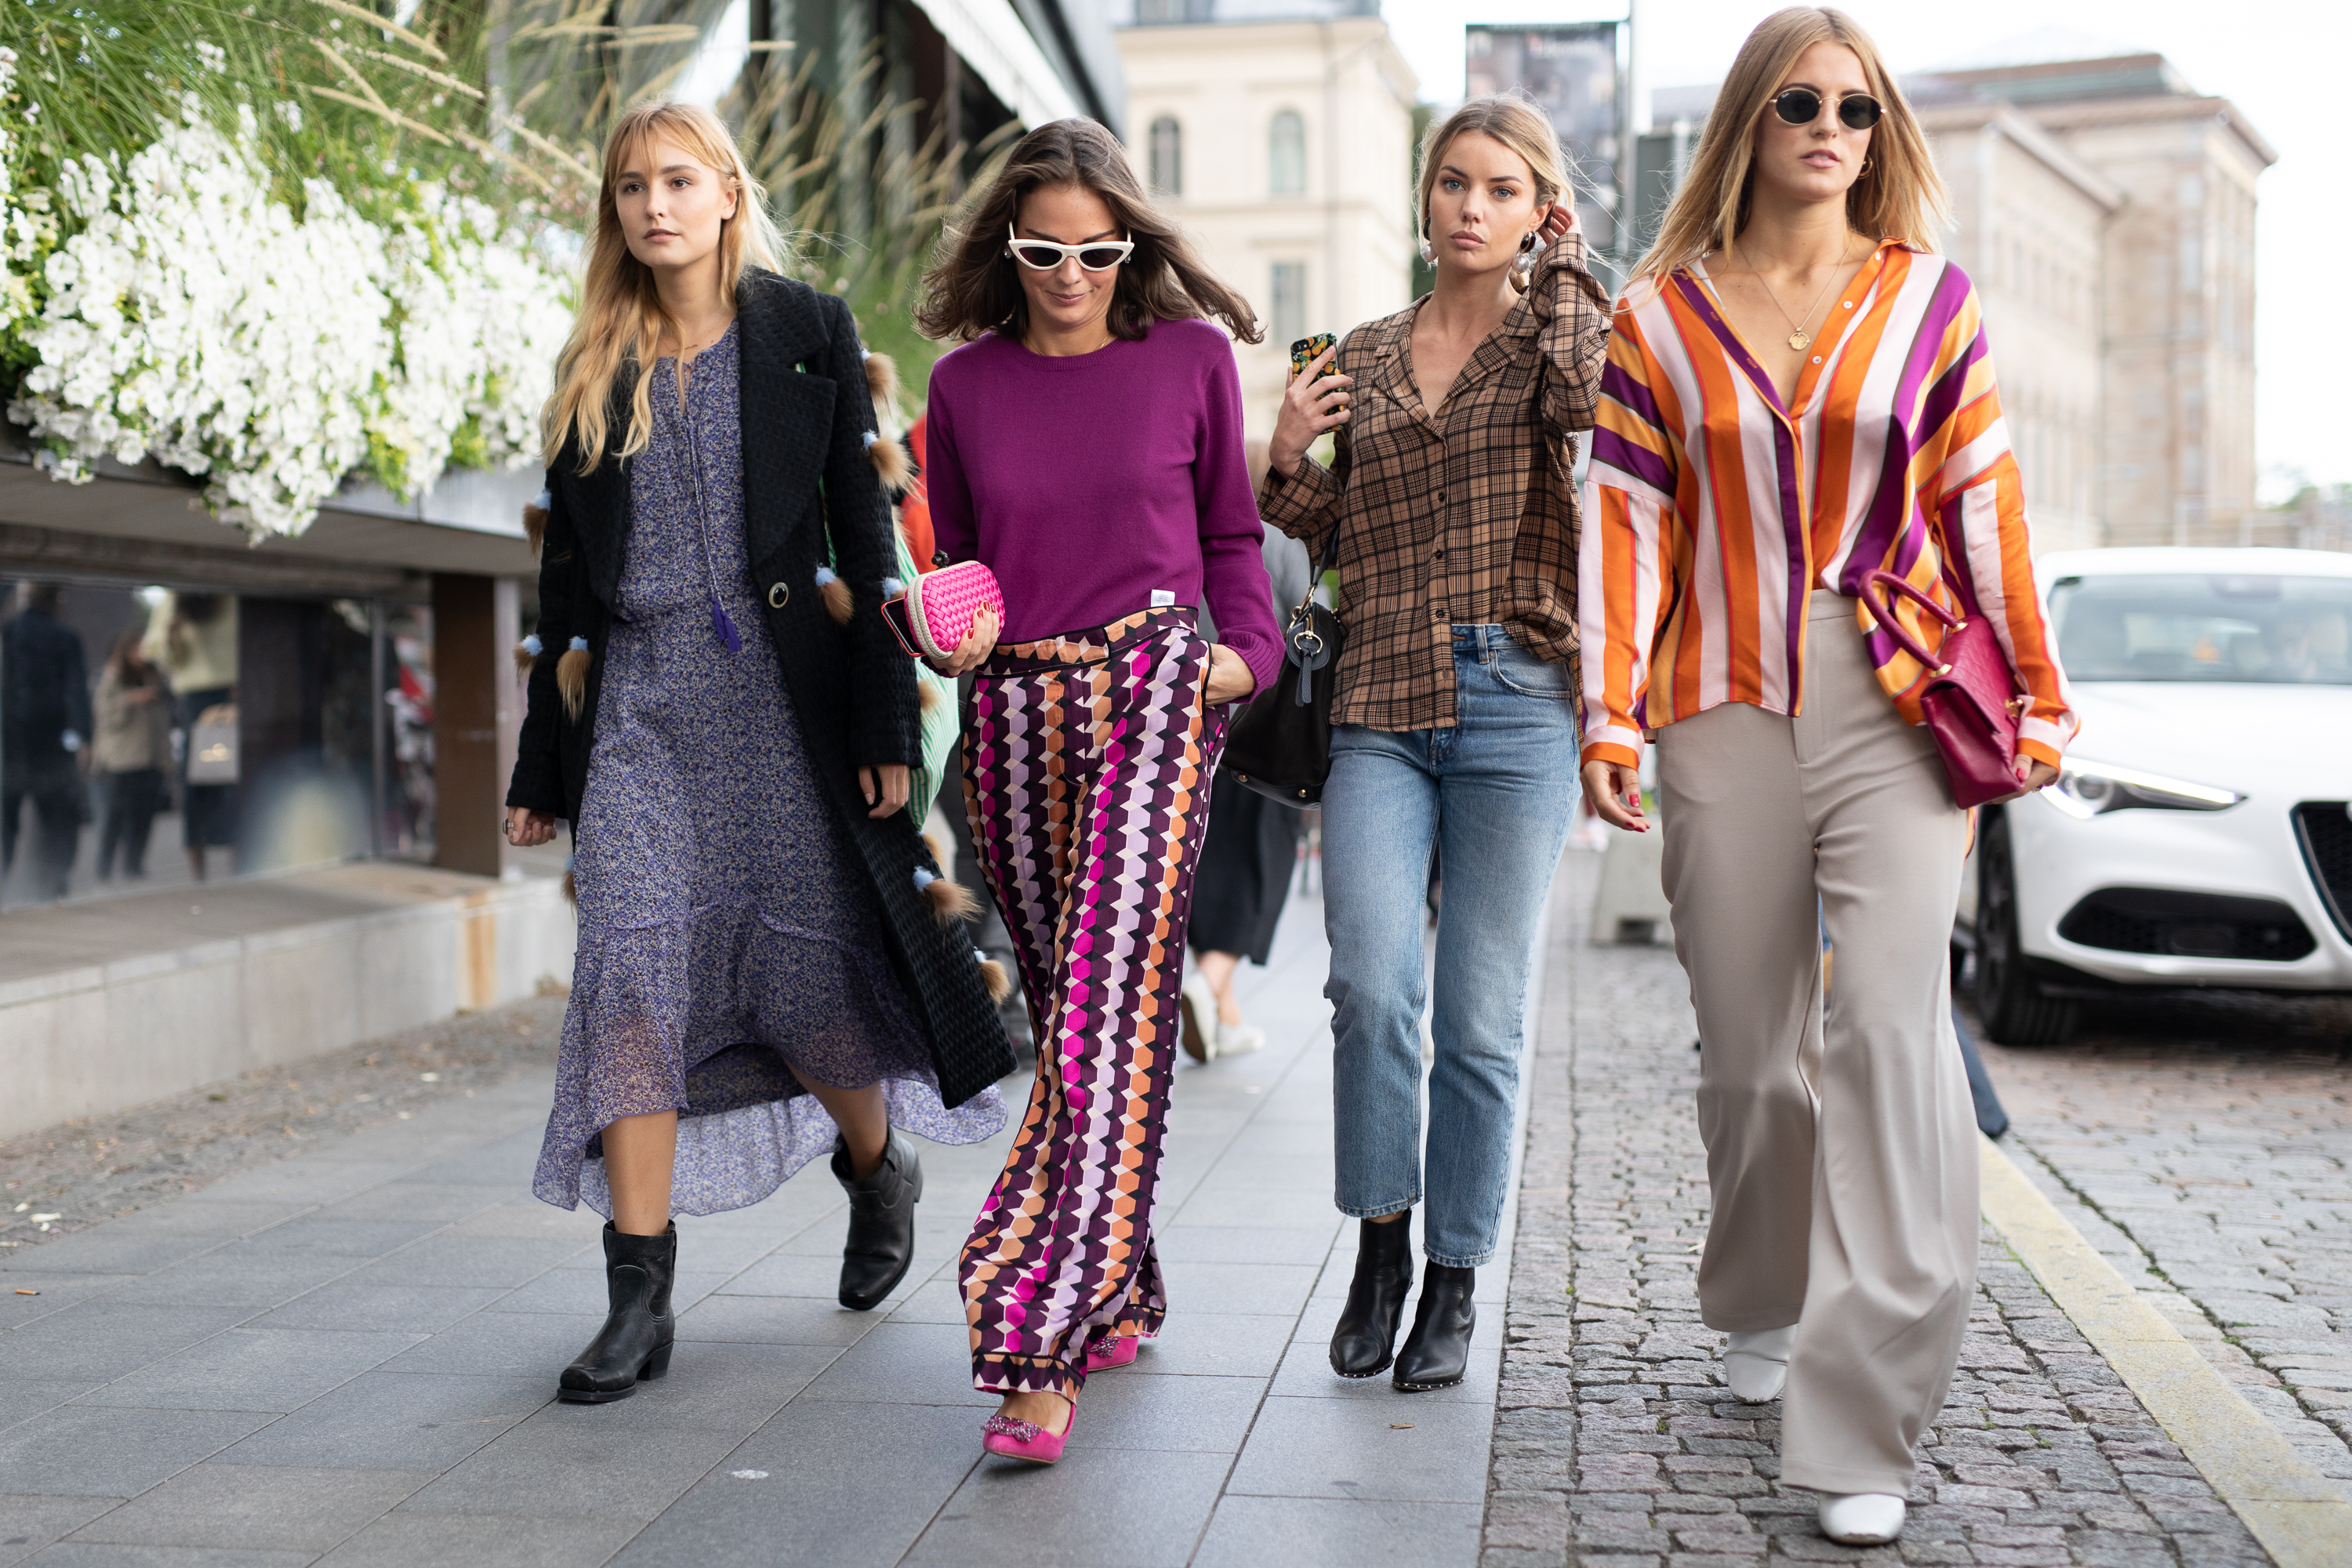 Why European women are moving in Asian fashion?